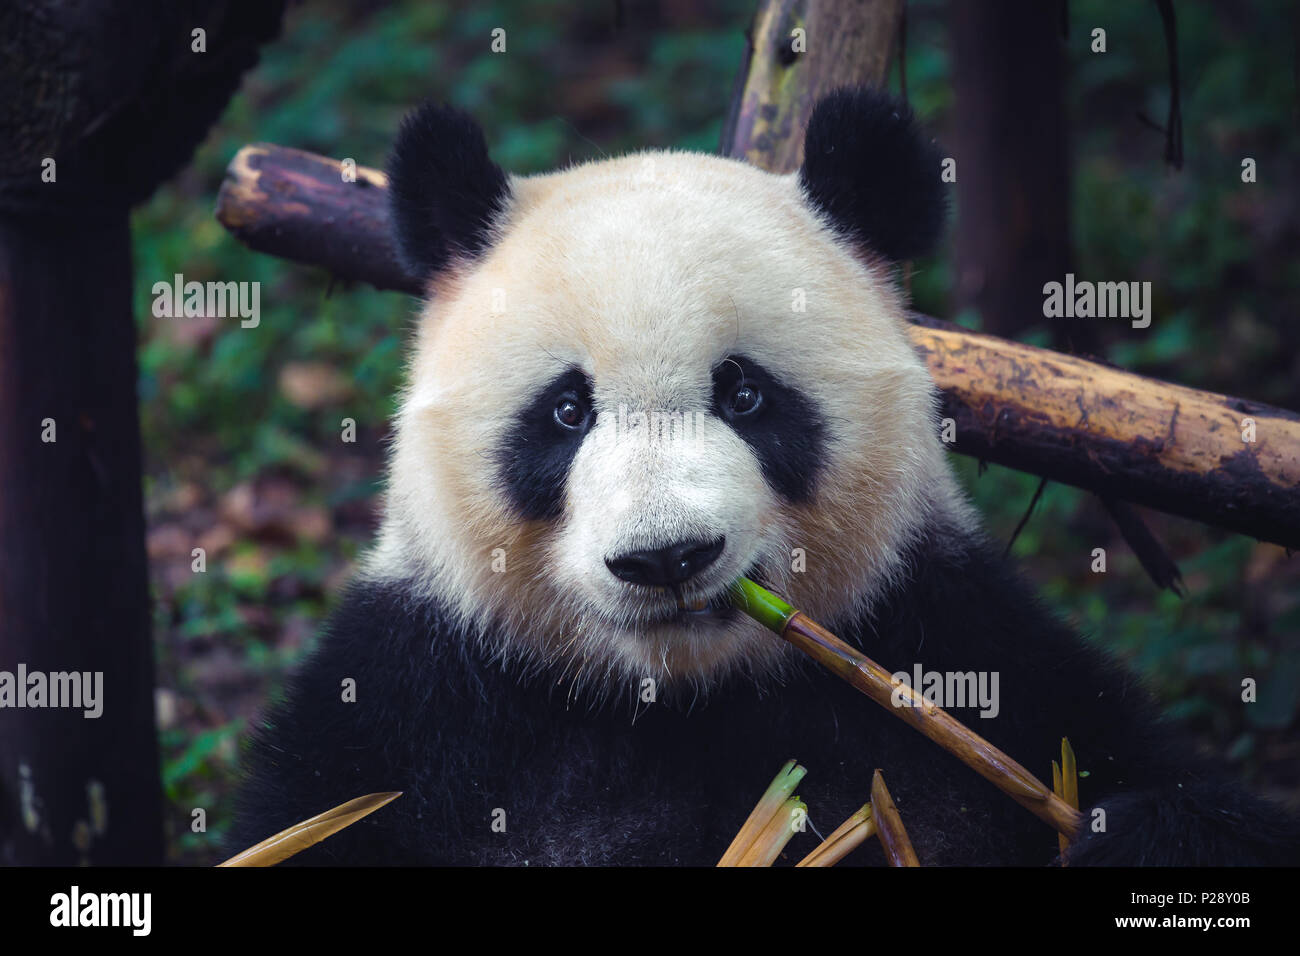 One adult giant panda eating a bamboo stick in close up portrait - Stock Image